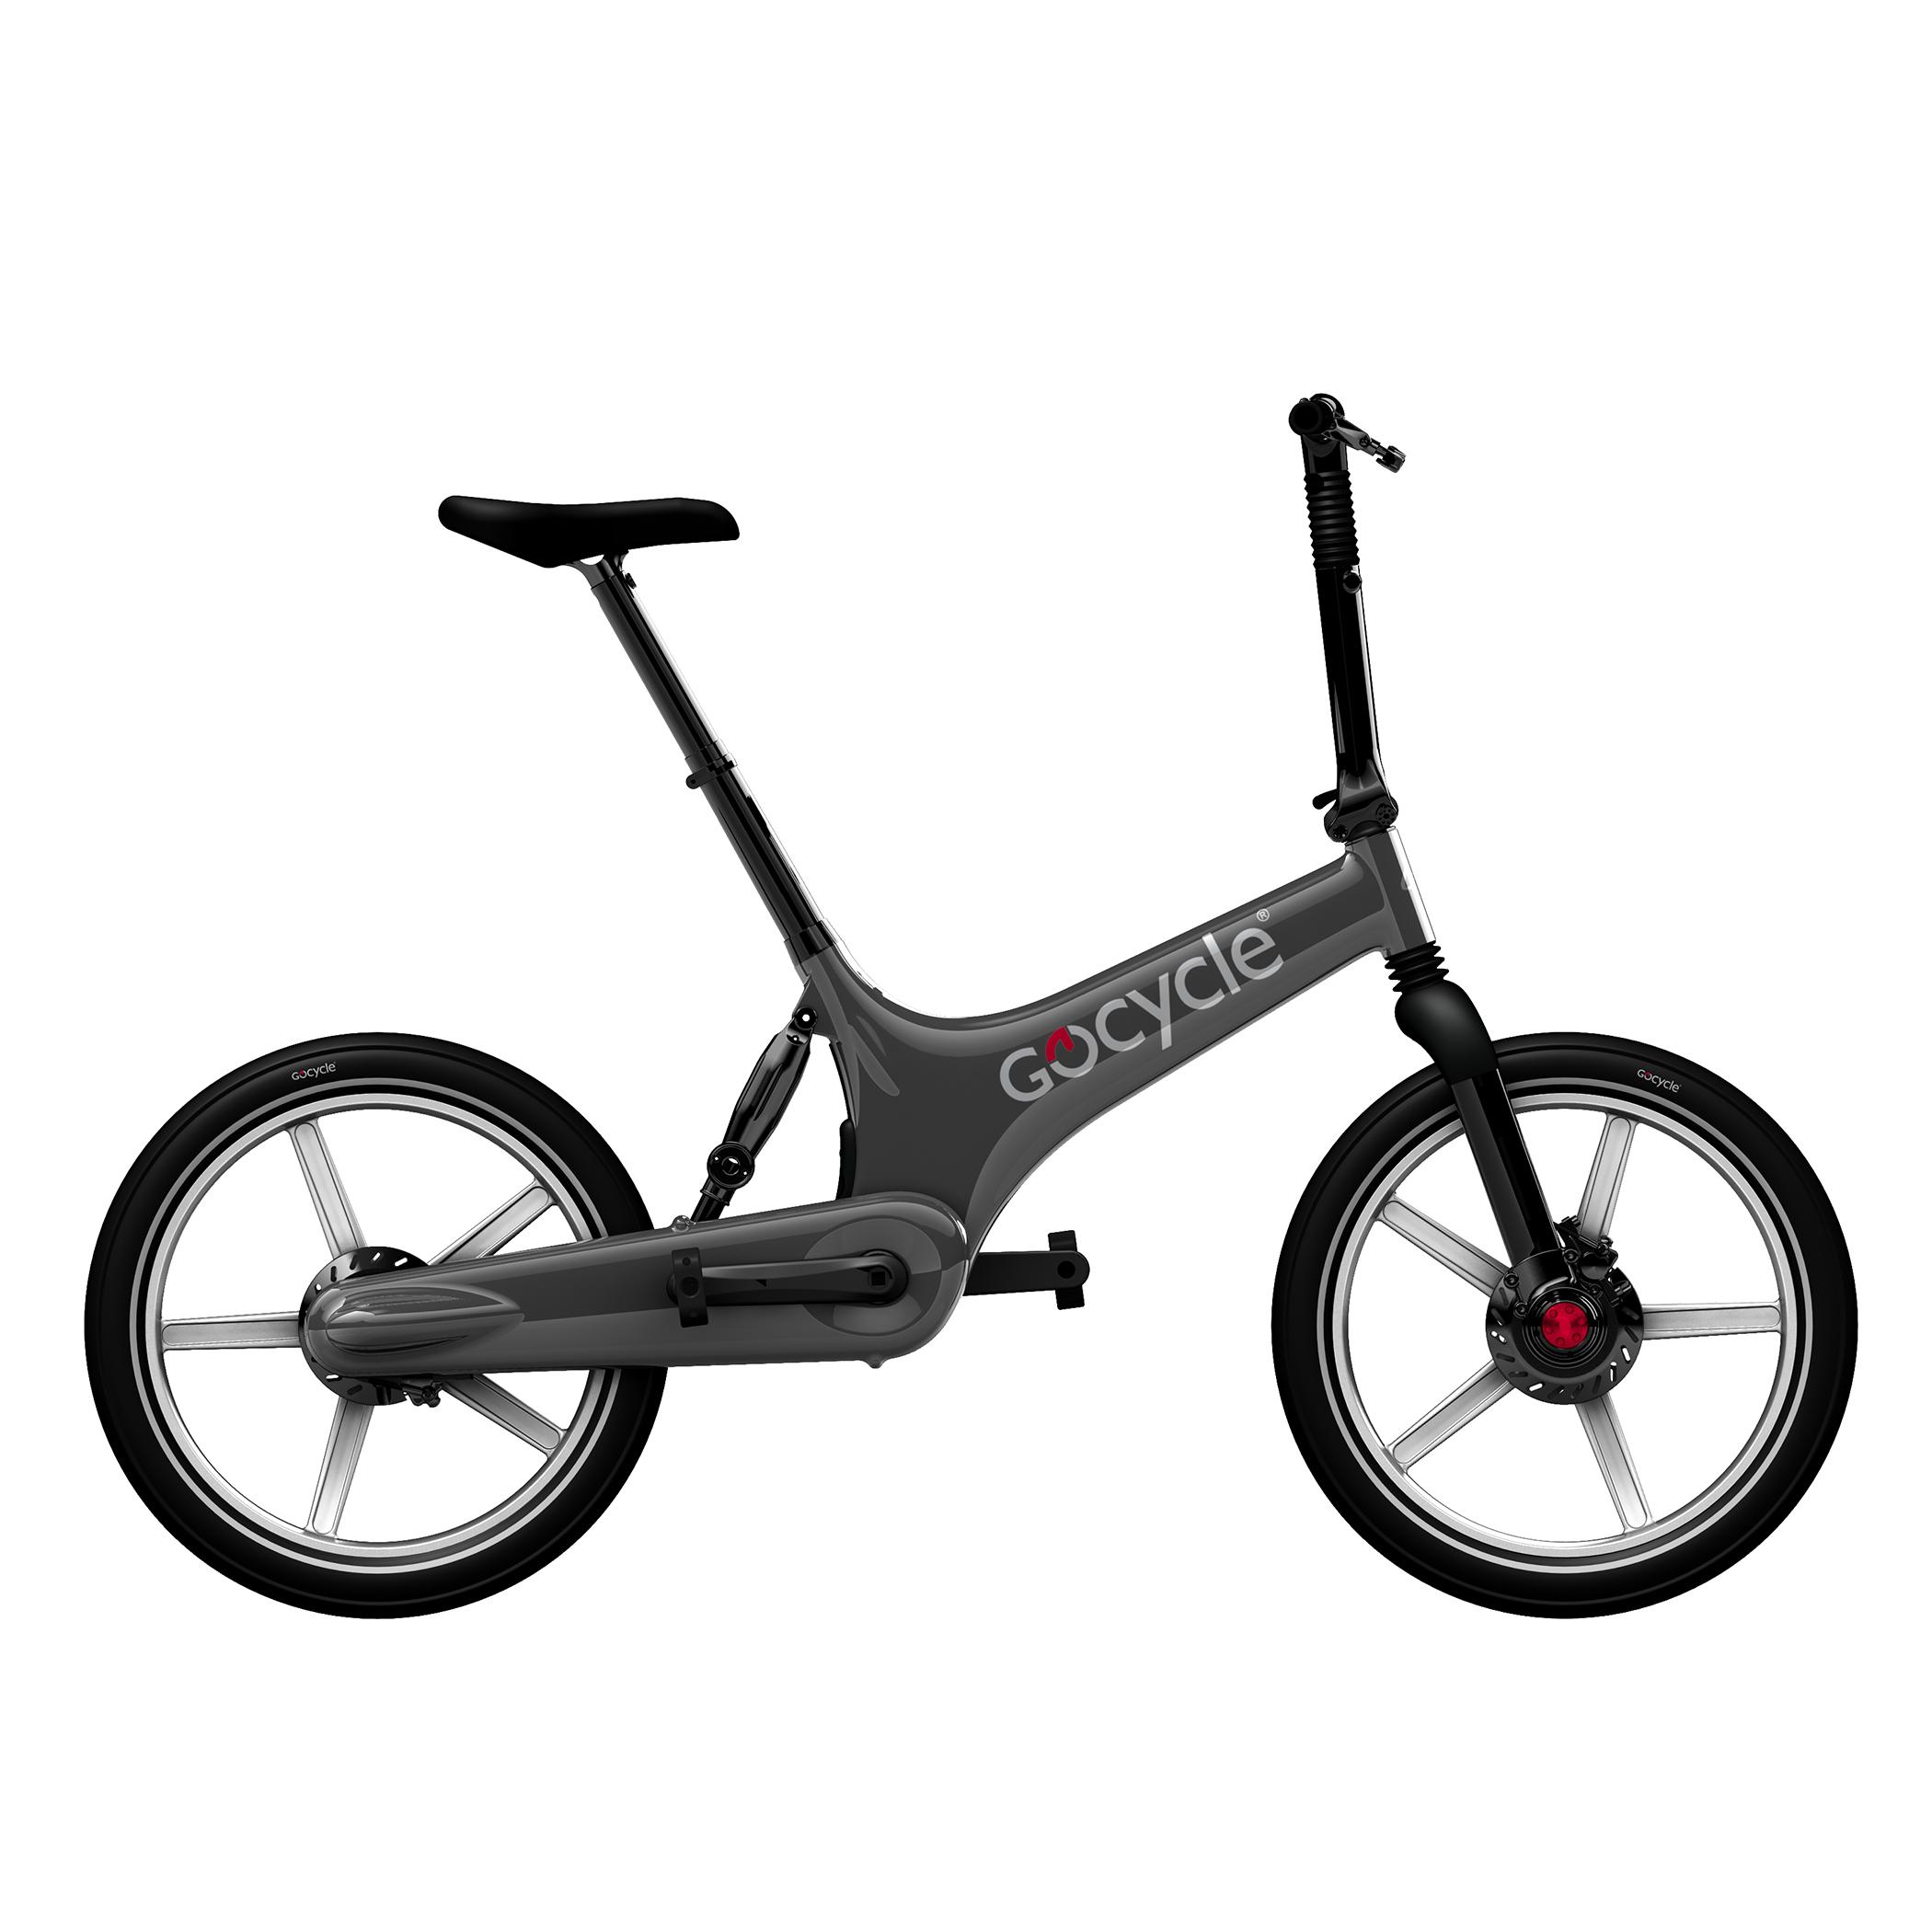 GocycleG2_FullSideRight_2100.jpg